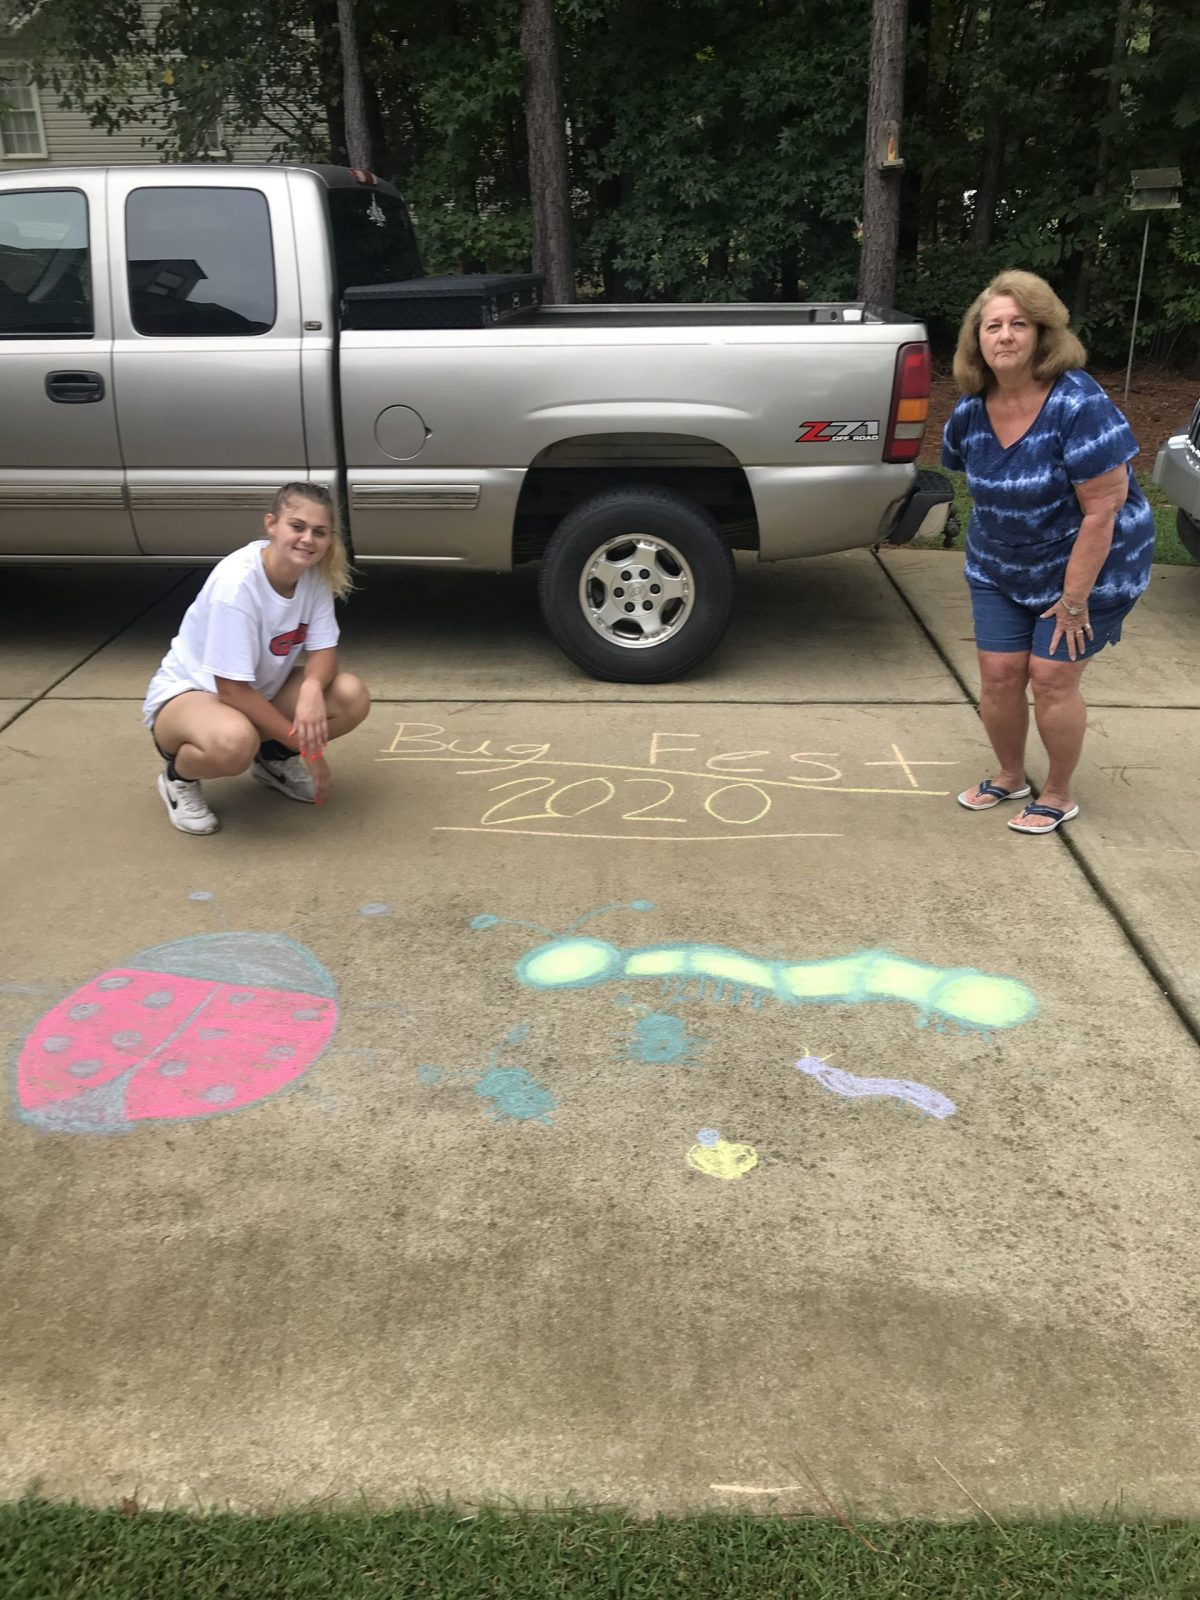 Cute chalk bugs, two people and a silver truck